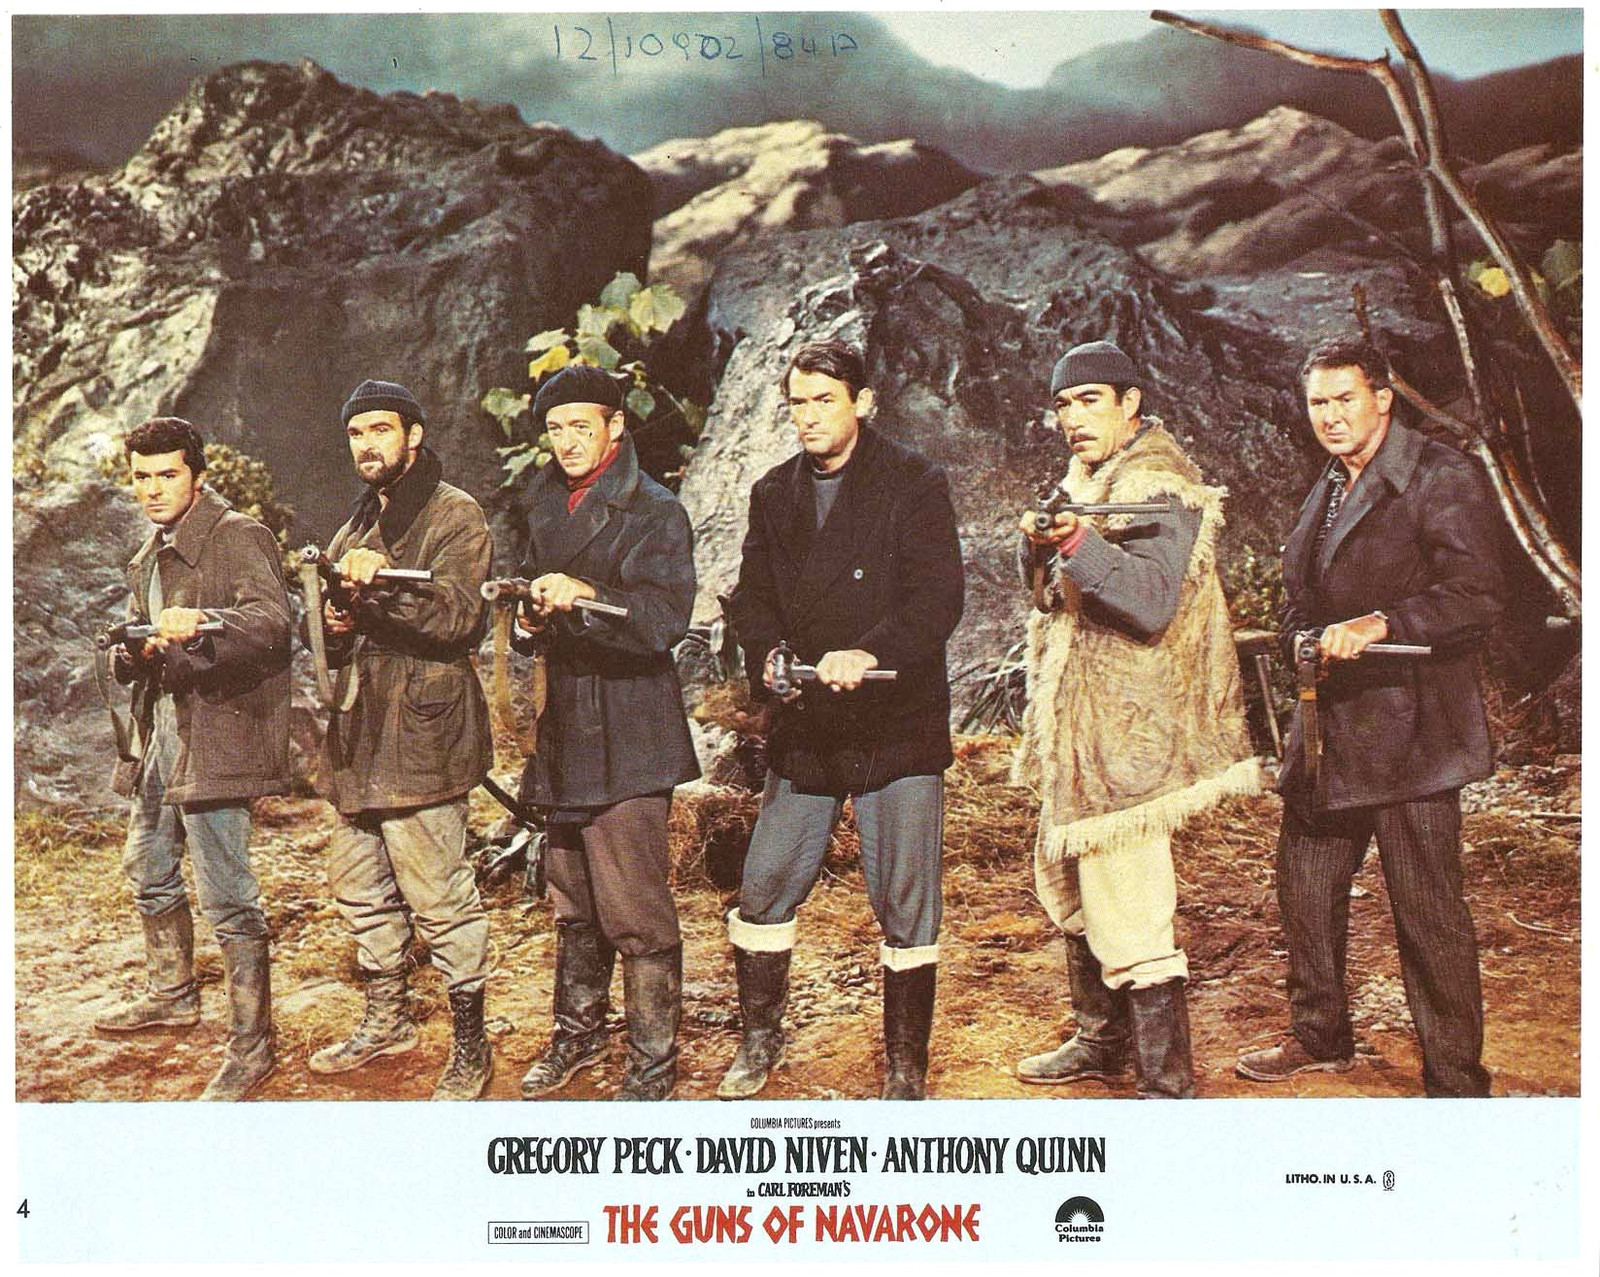 242092020the20guns20of20navarone